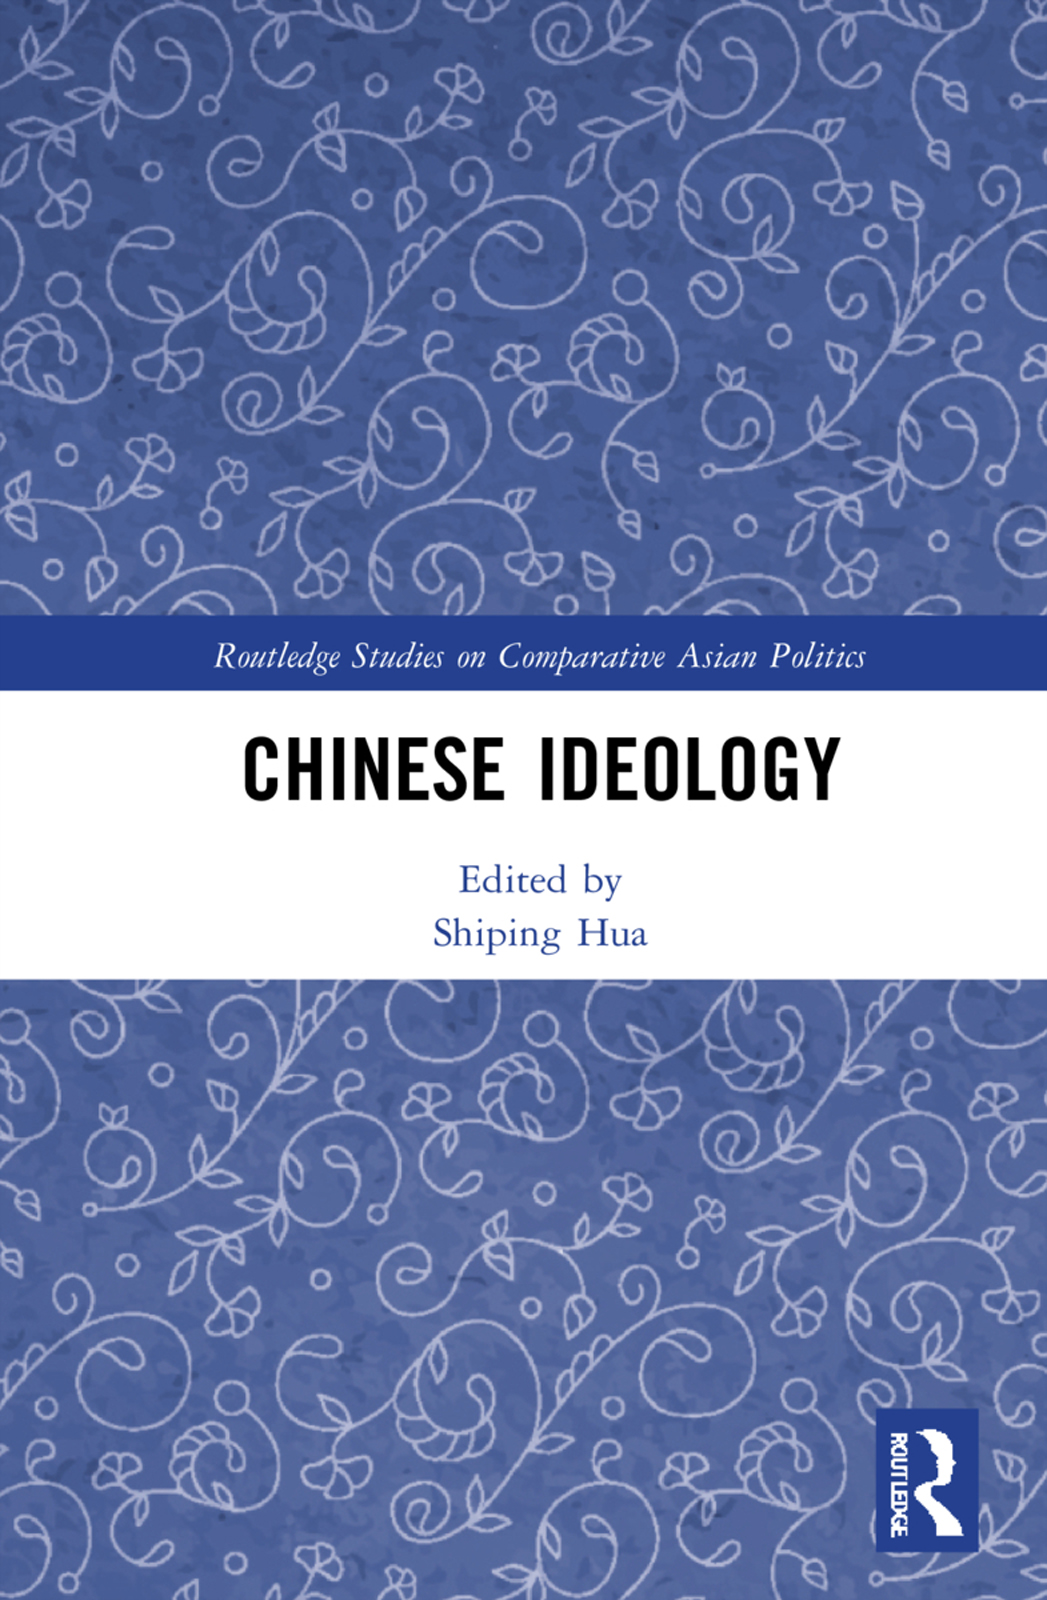 Fascism with Chinese characteristics